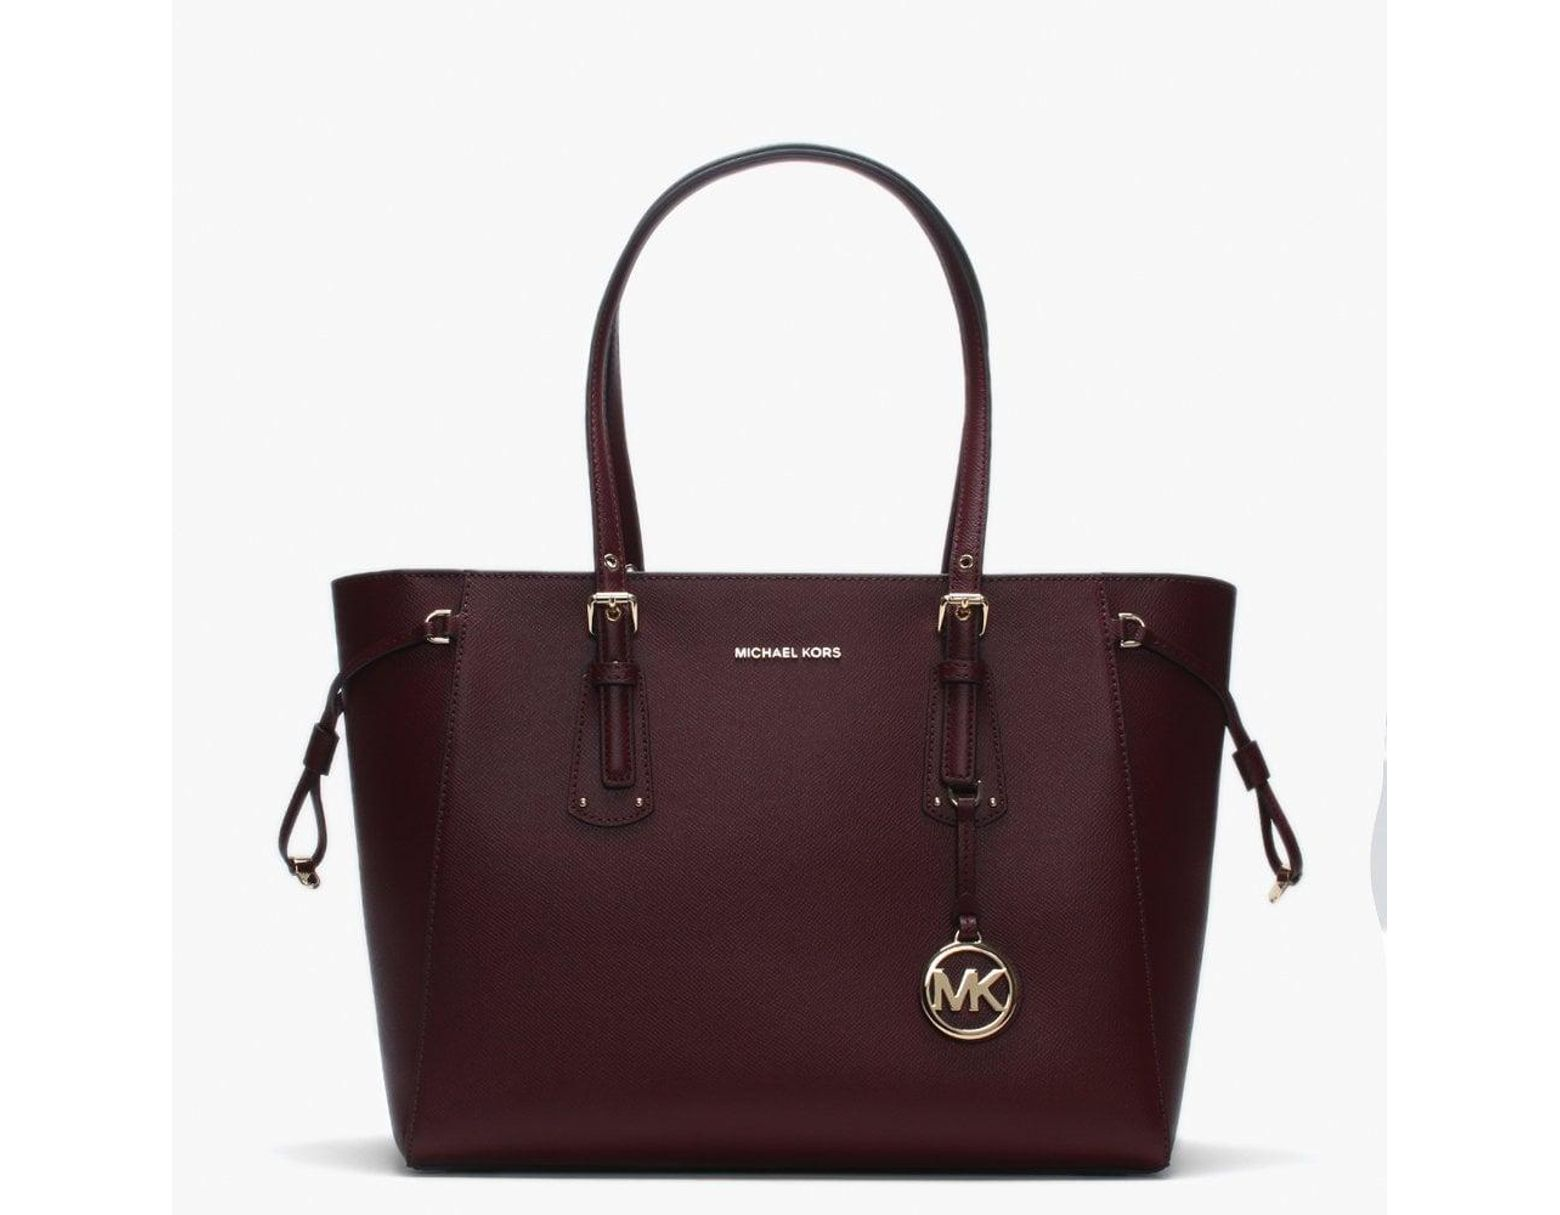 dddd0bdecf22 Michael Kors Voyager Oxblood Saffiano Leather Tote Bag in Purple - Lyst